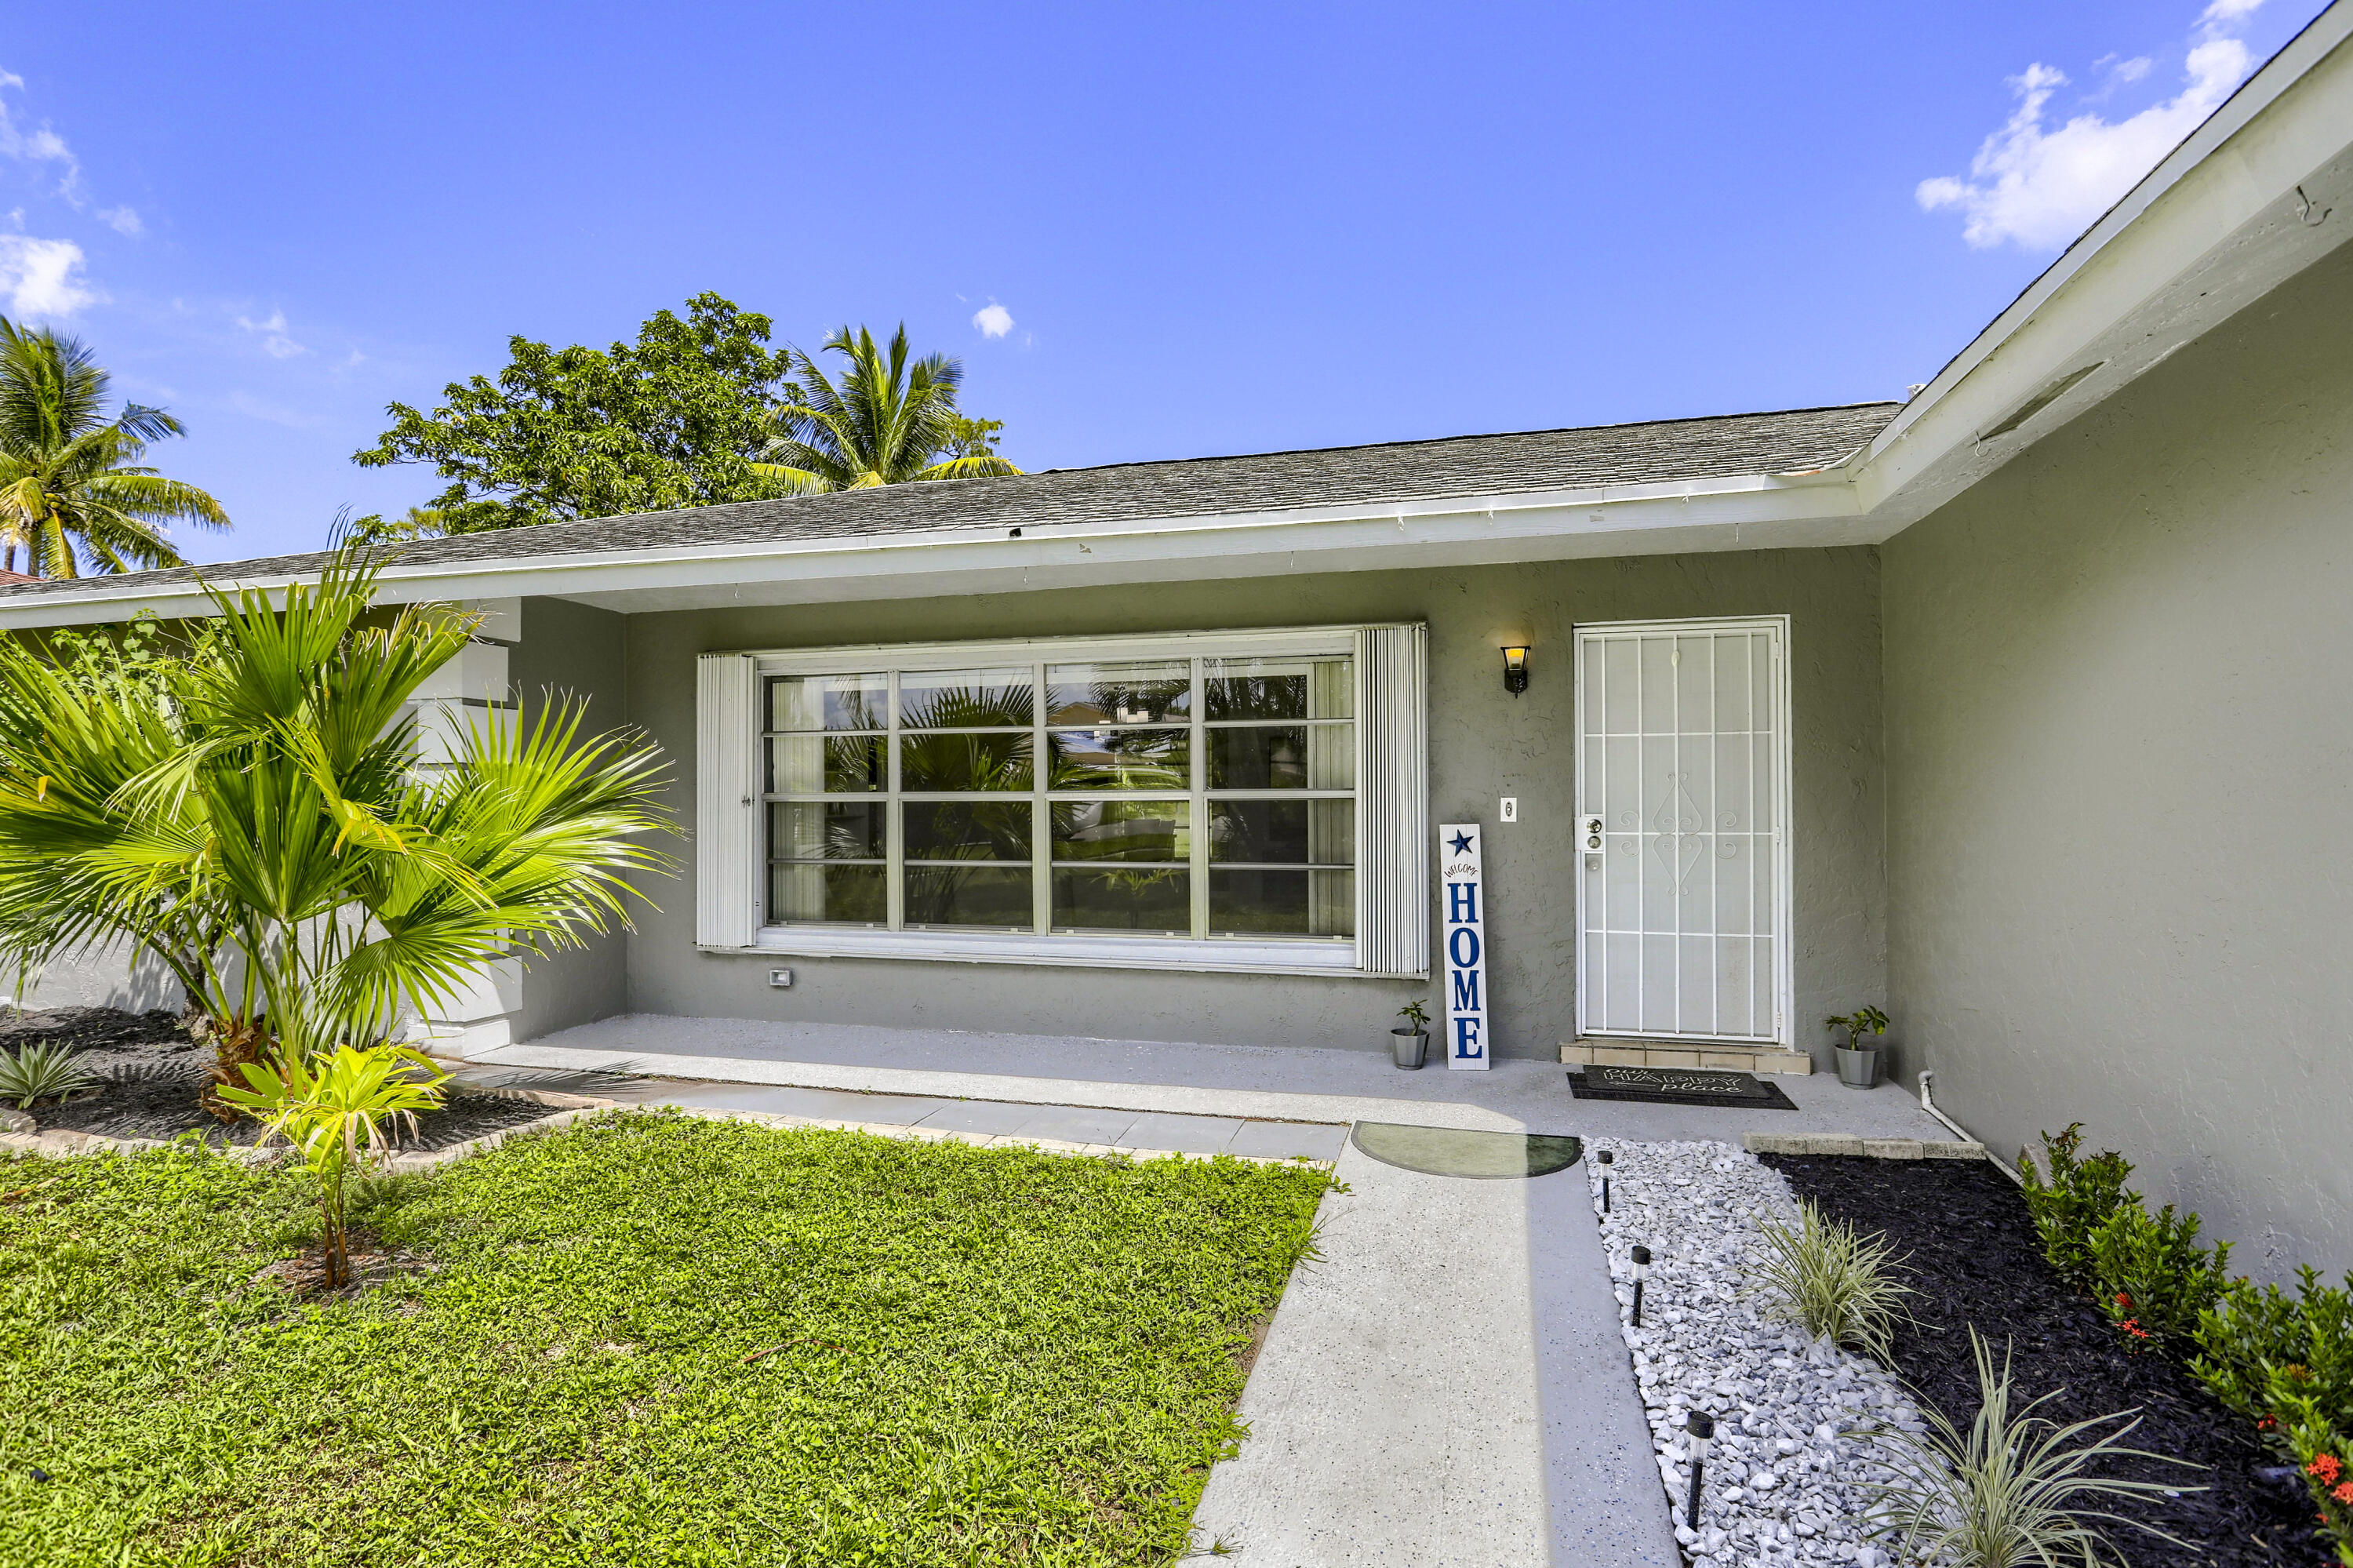 110  Timber Run  For Sale 10744678, FL